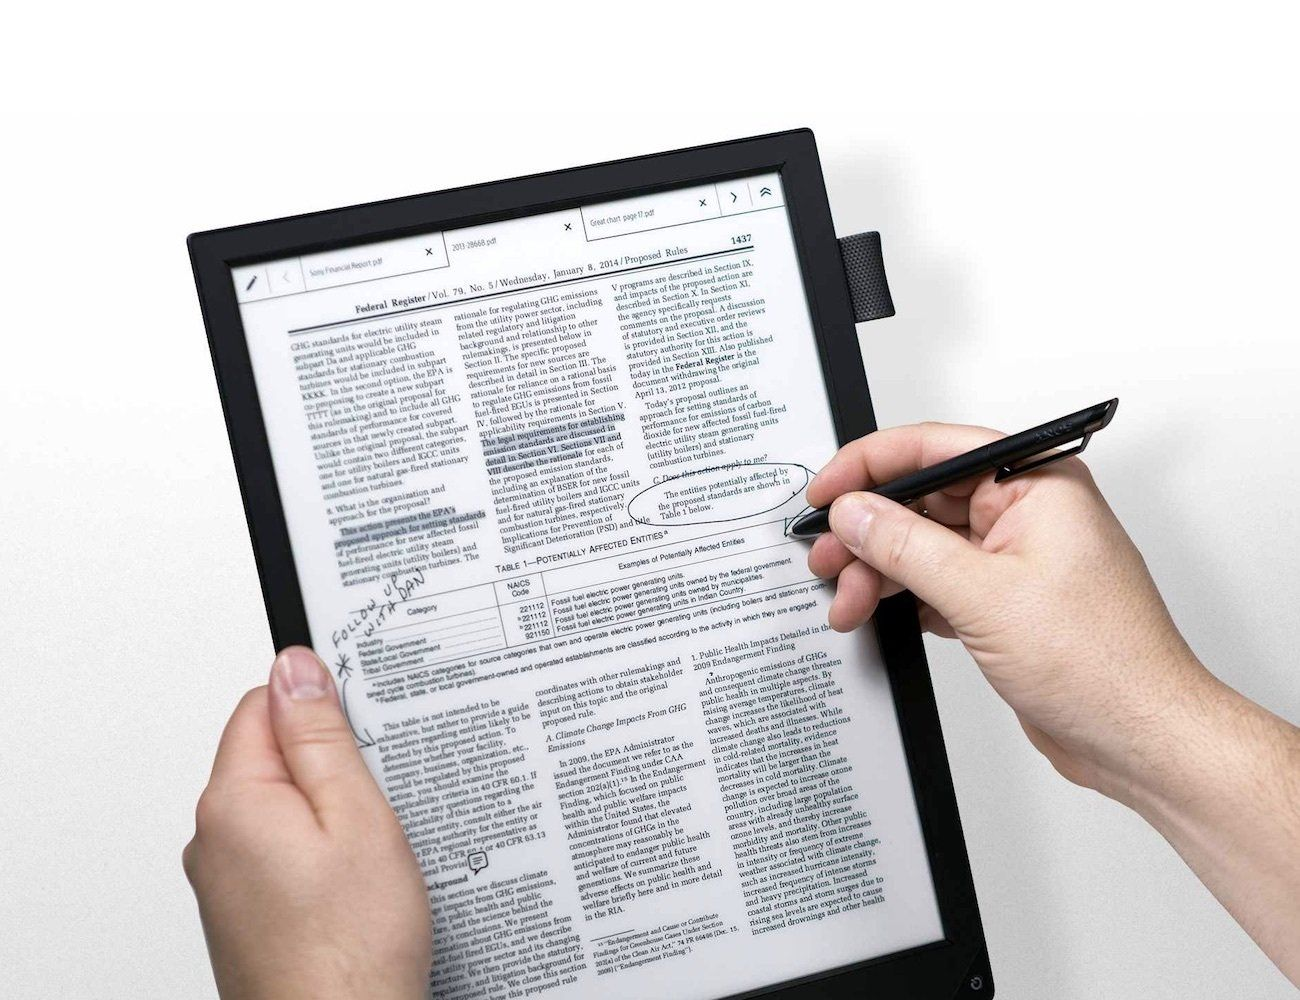 Coming with a stylus, the Digital Paper Tablet also works